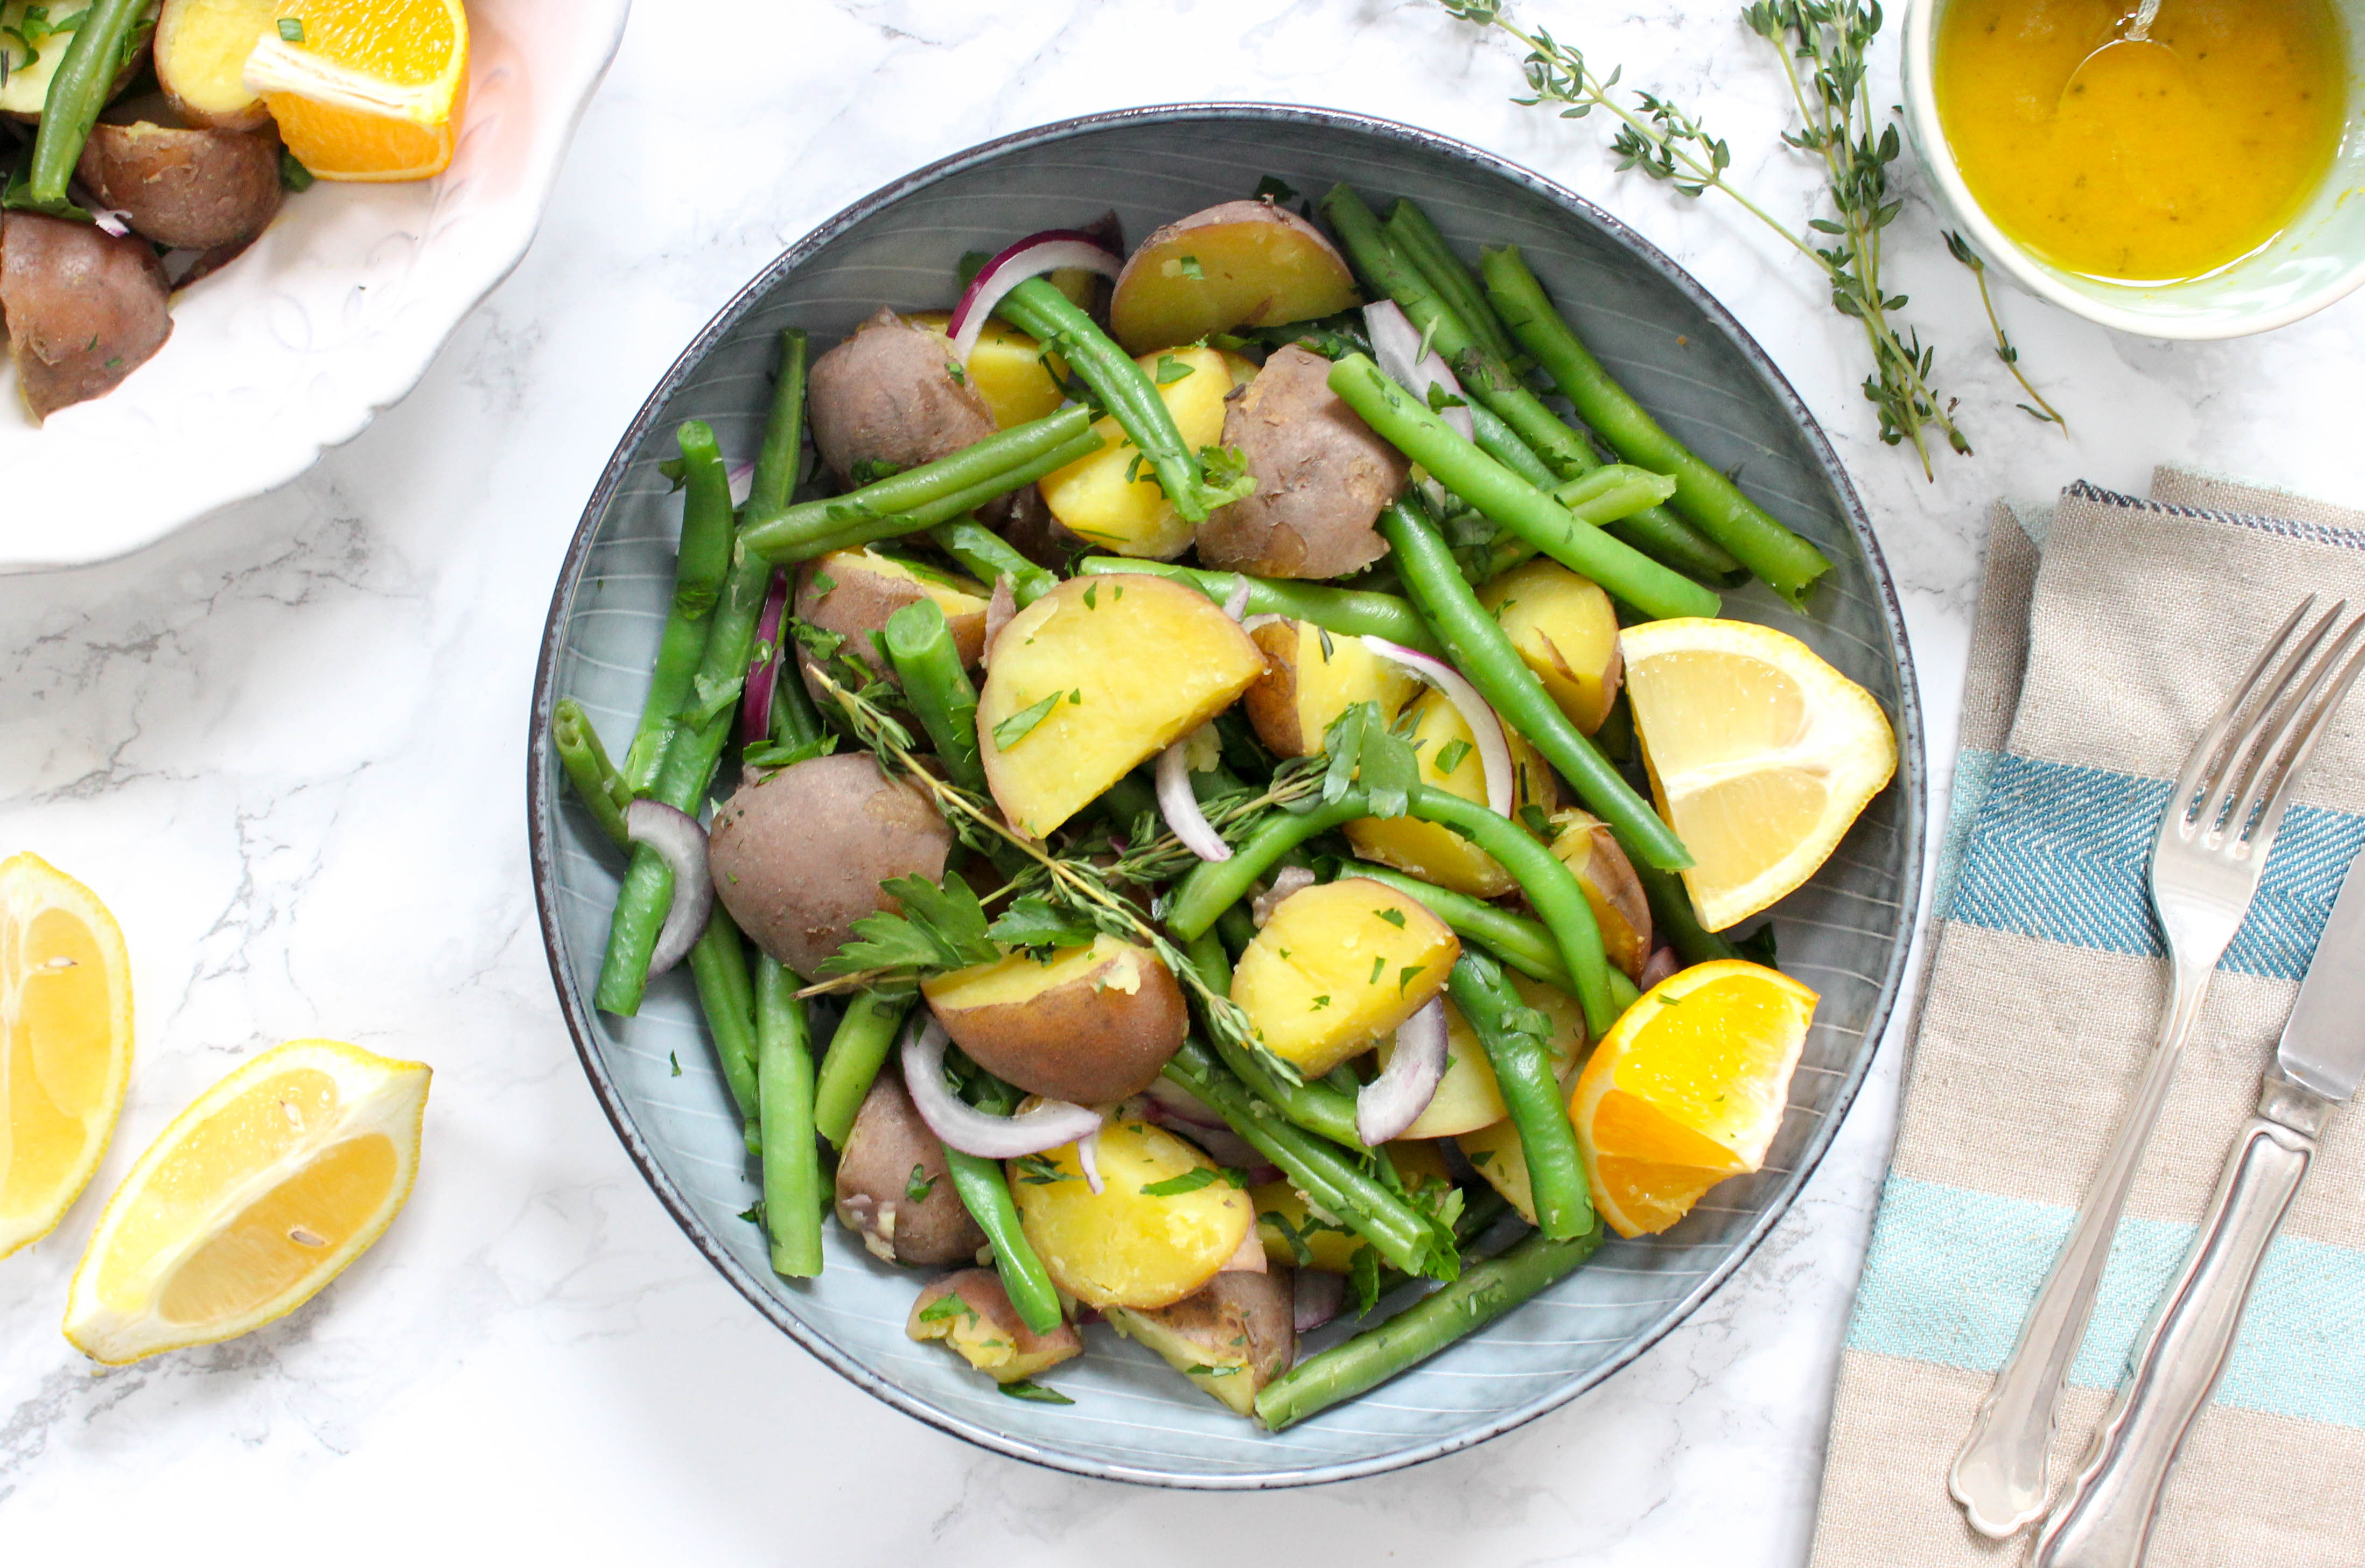 Simple Green Bean and Potato Salad